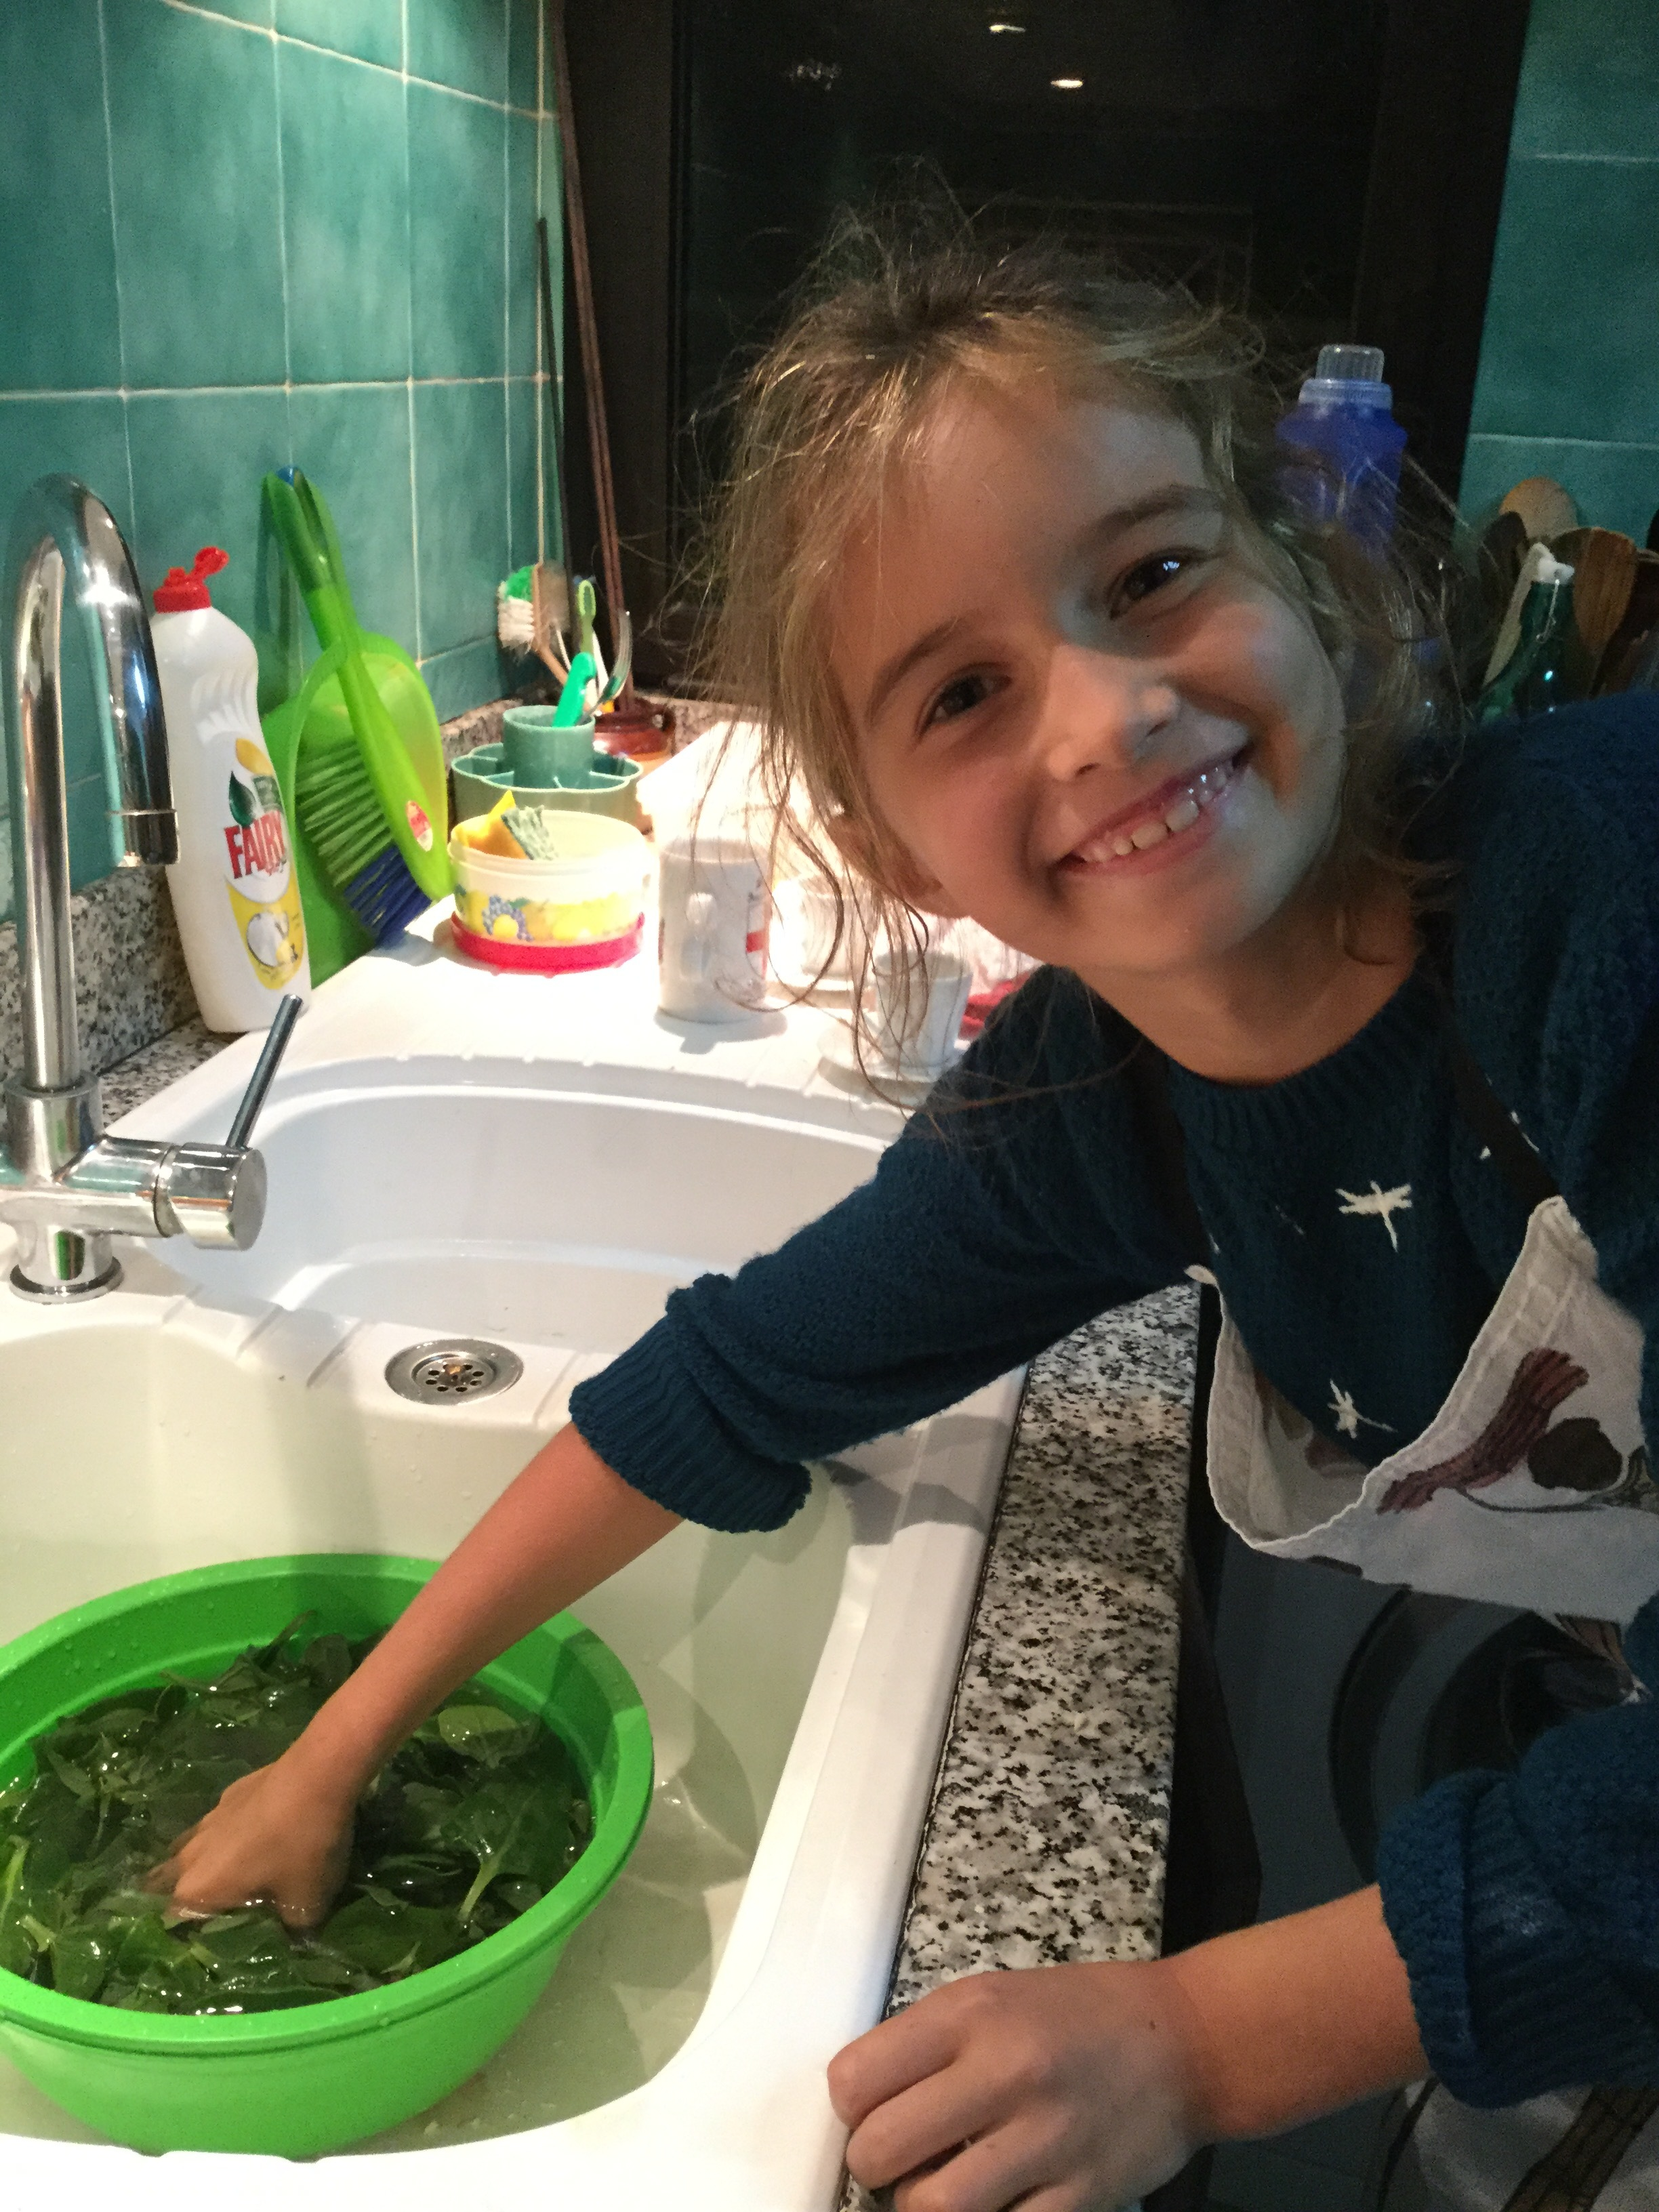 Lili washing spinach.